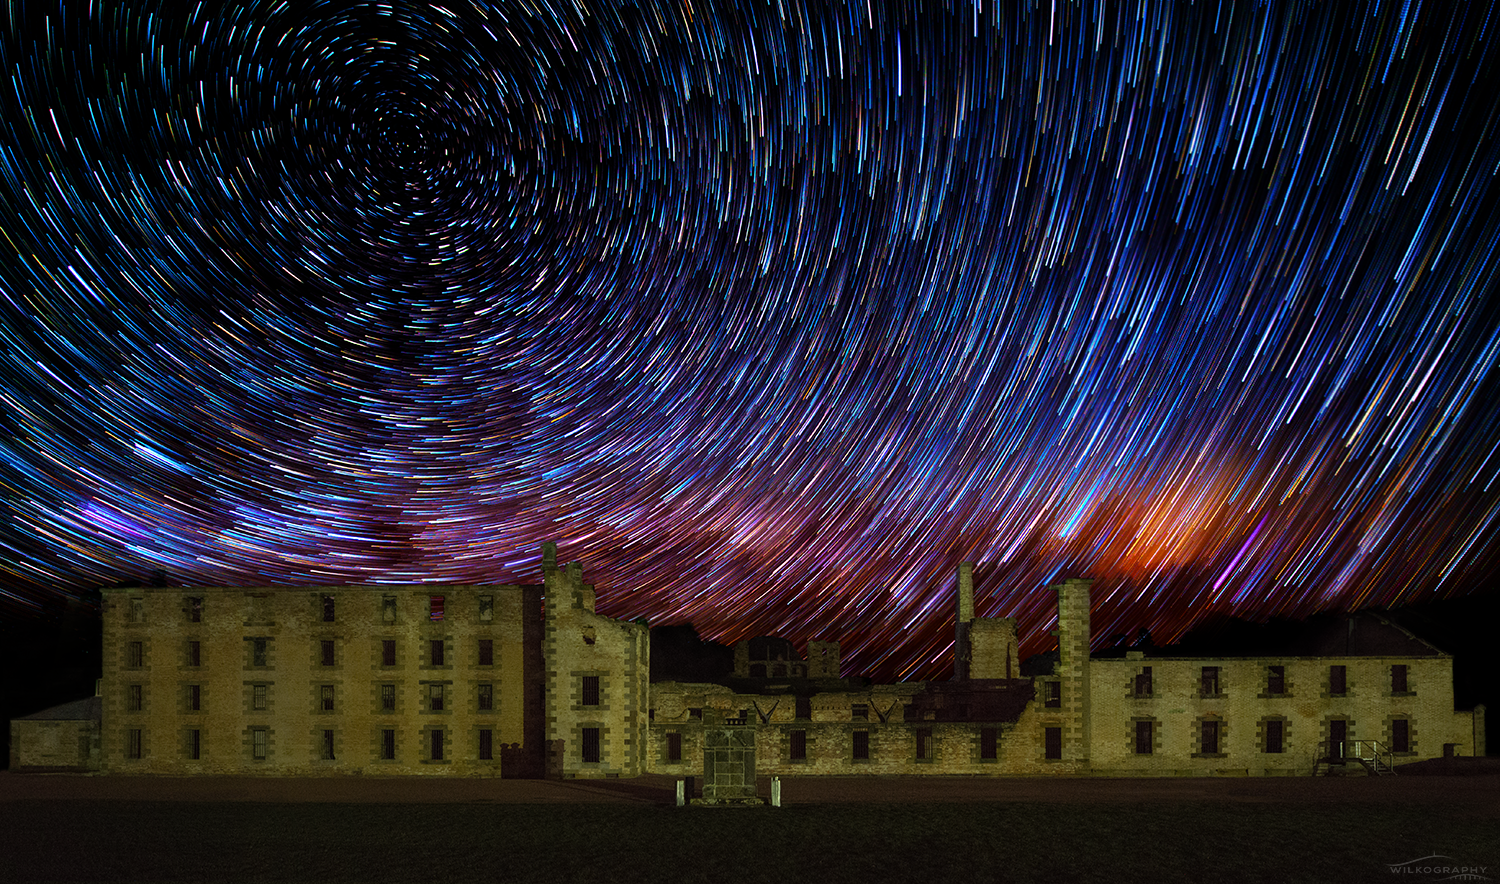 The Penitentiary & Comet Star Trails #17